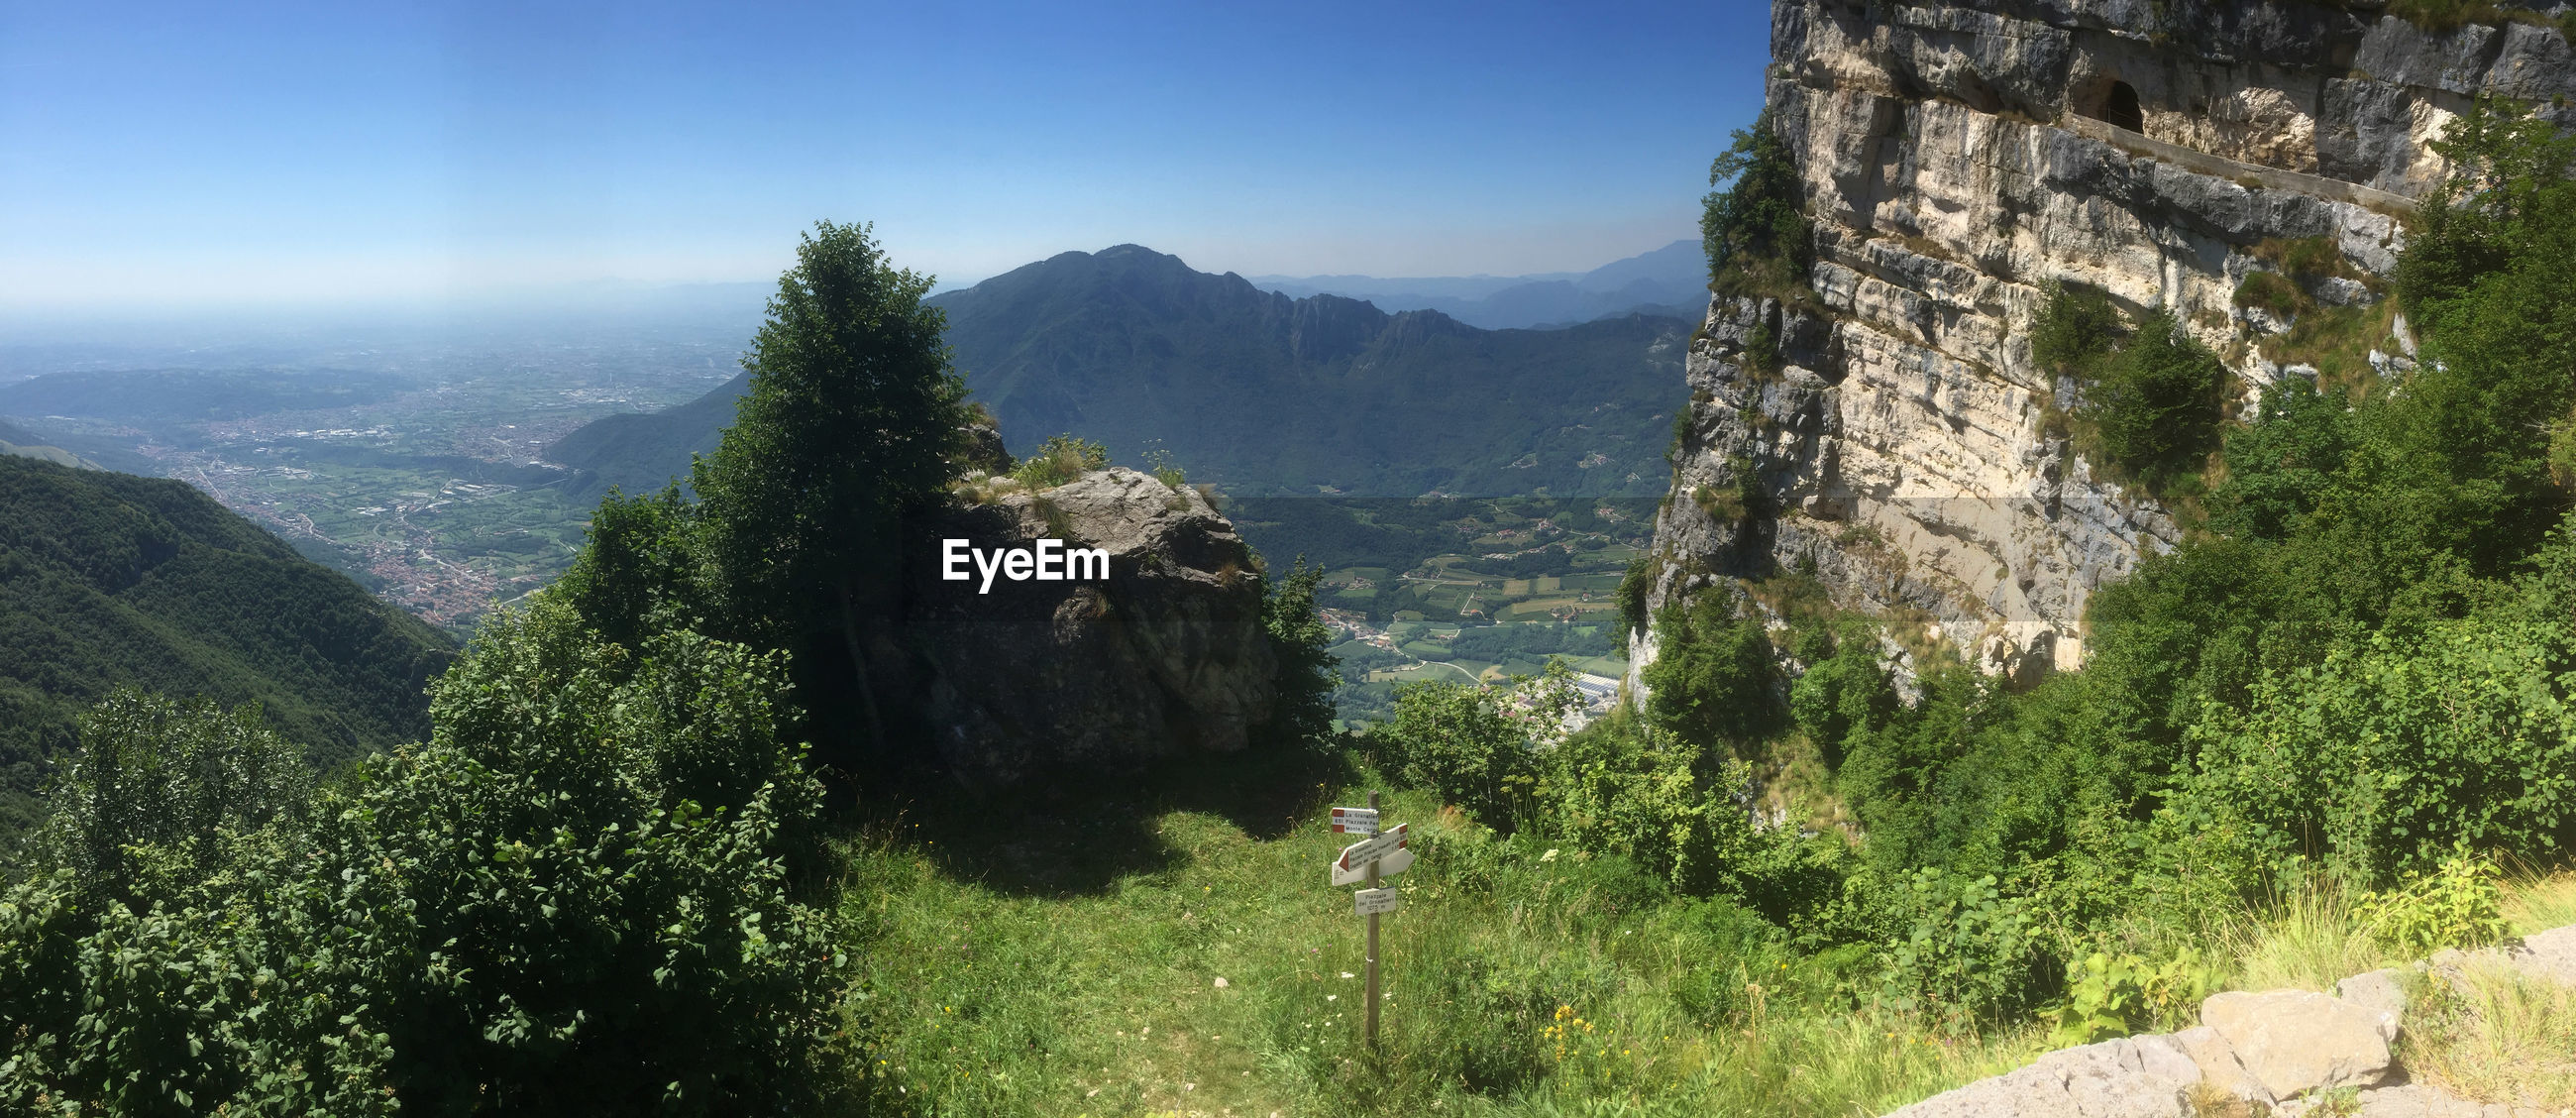 SCENIC VIEW OF MOUNTAINS AND CLEAR SKY